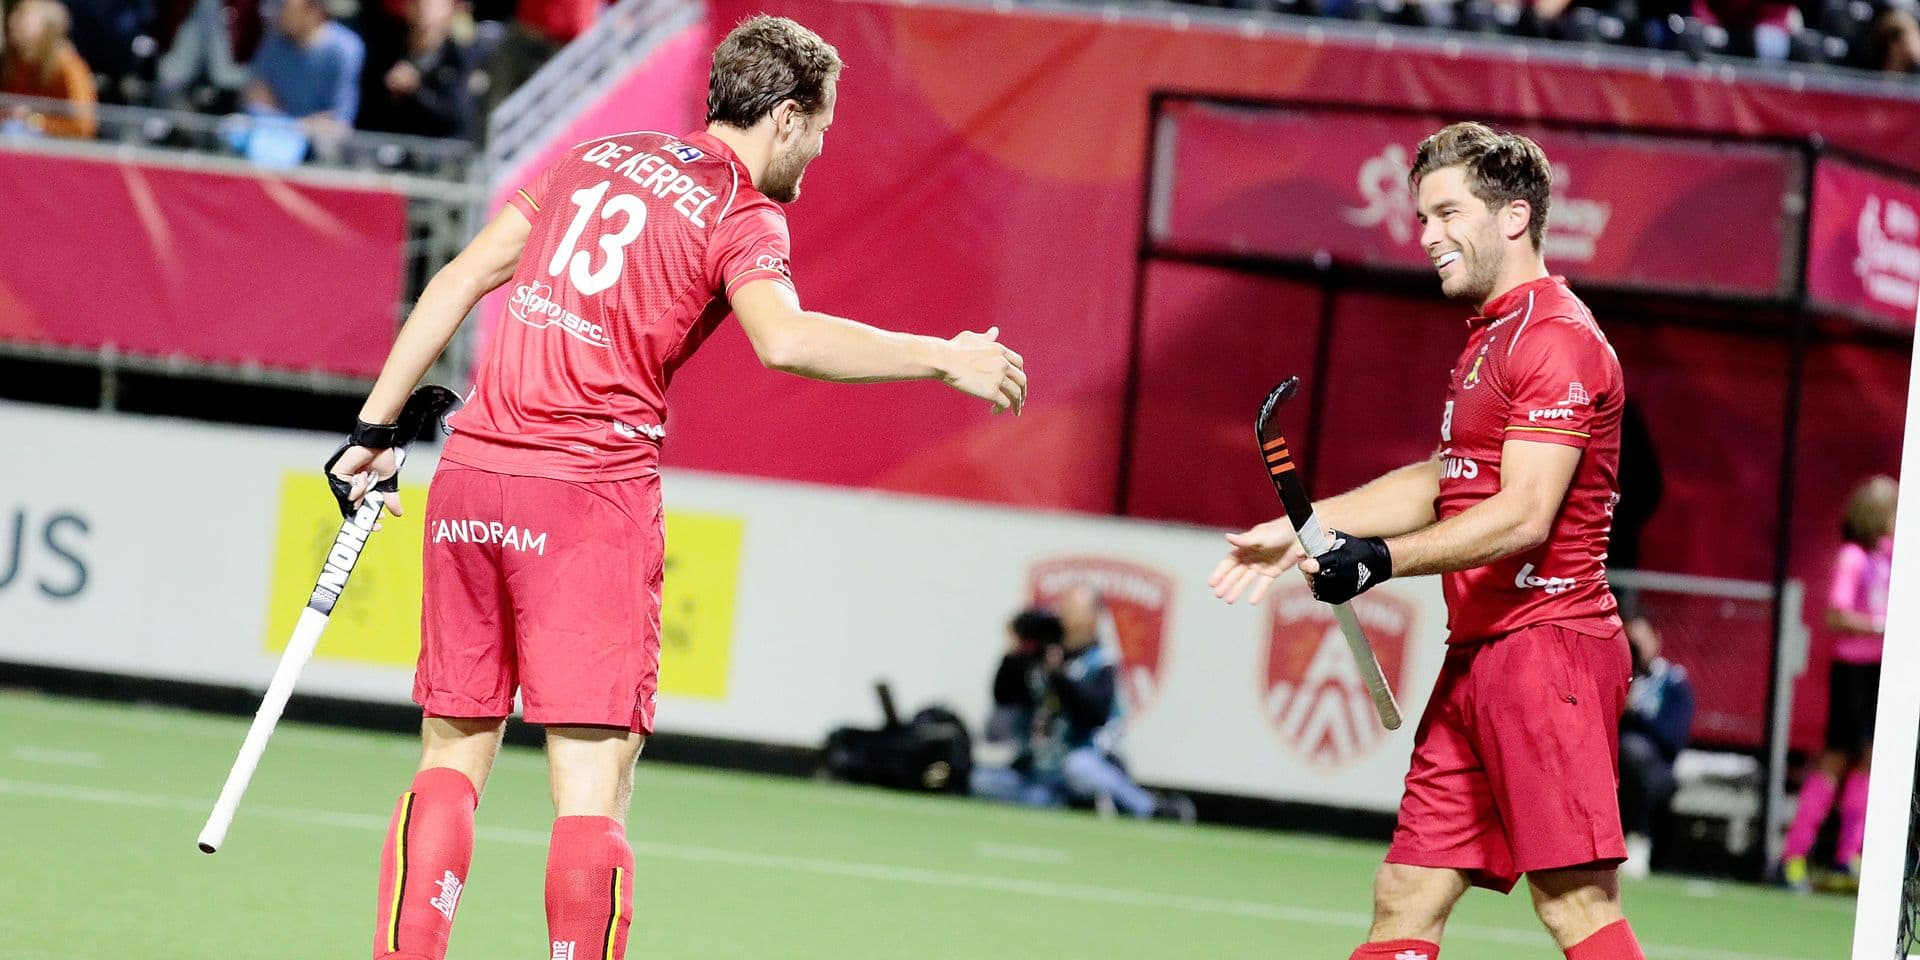 Belgium's Cedric Charlier, right, is congratulated by Belgium's Nicolas De Kerpel after scoring his sides fifth goal during a men's European Championship field hockey match between Belgium and Wales at the Wilrijkse Plein, Antwerp, Belgium, Tuesday, Aug. 20, 2019. (AP Photo/Virginia Mayo)